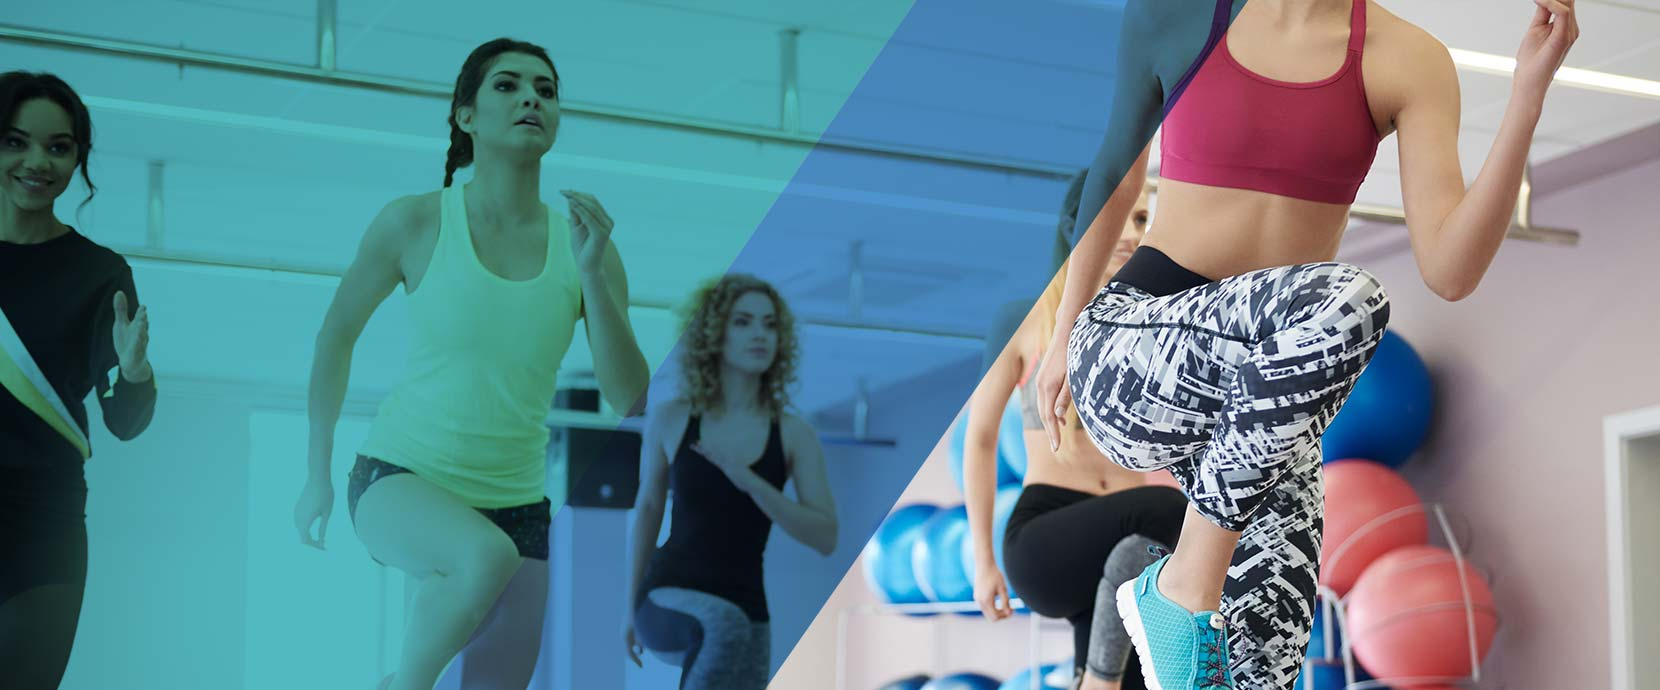 All the features that you need for your aerobic studio